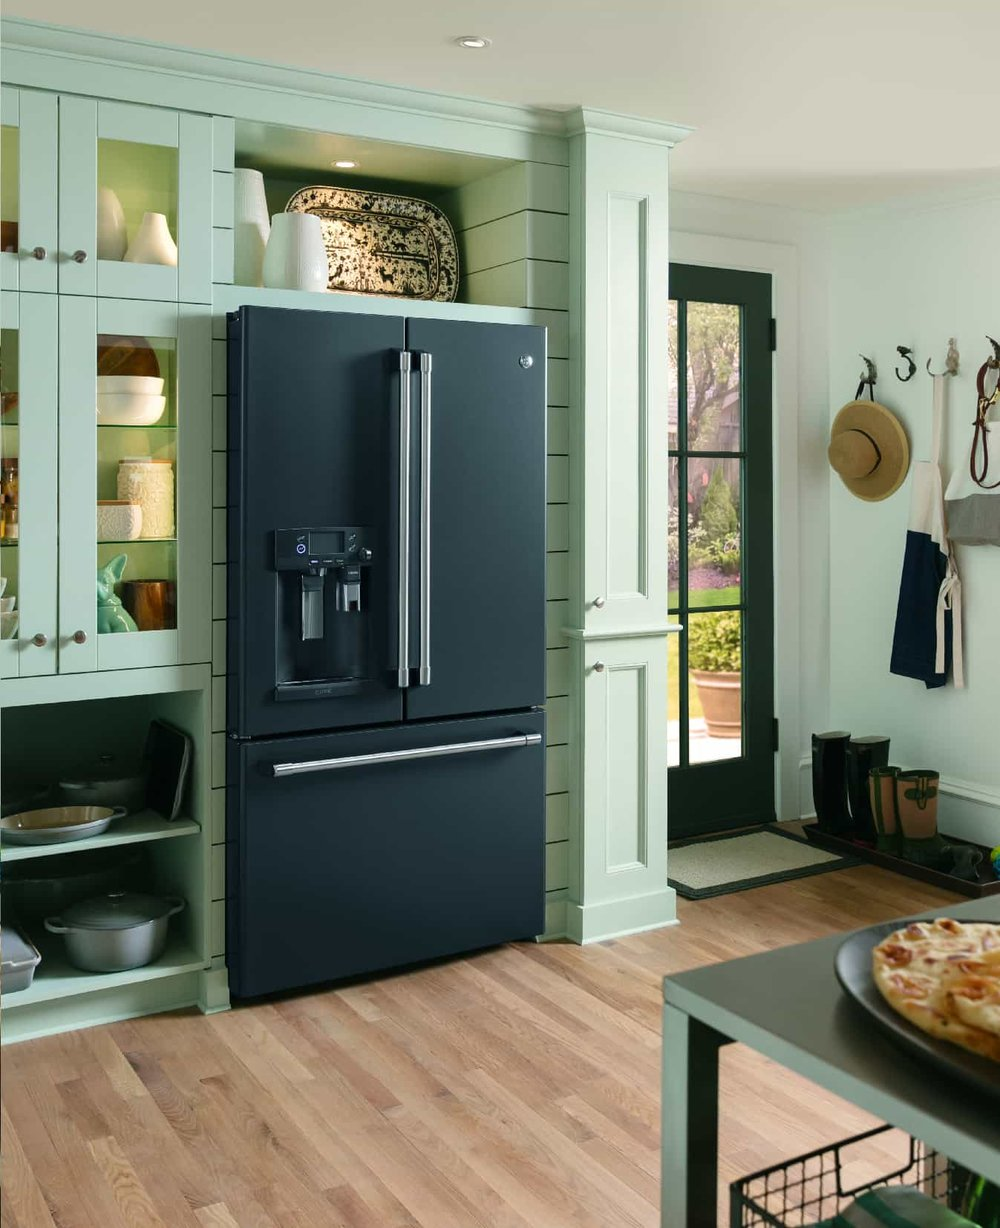 French Door Refrigerator in the Black Slate finish, by GE Appliances - model #CFE28UELDS